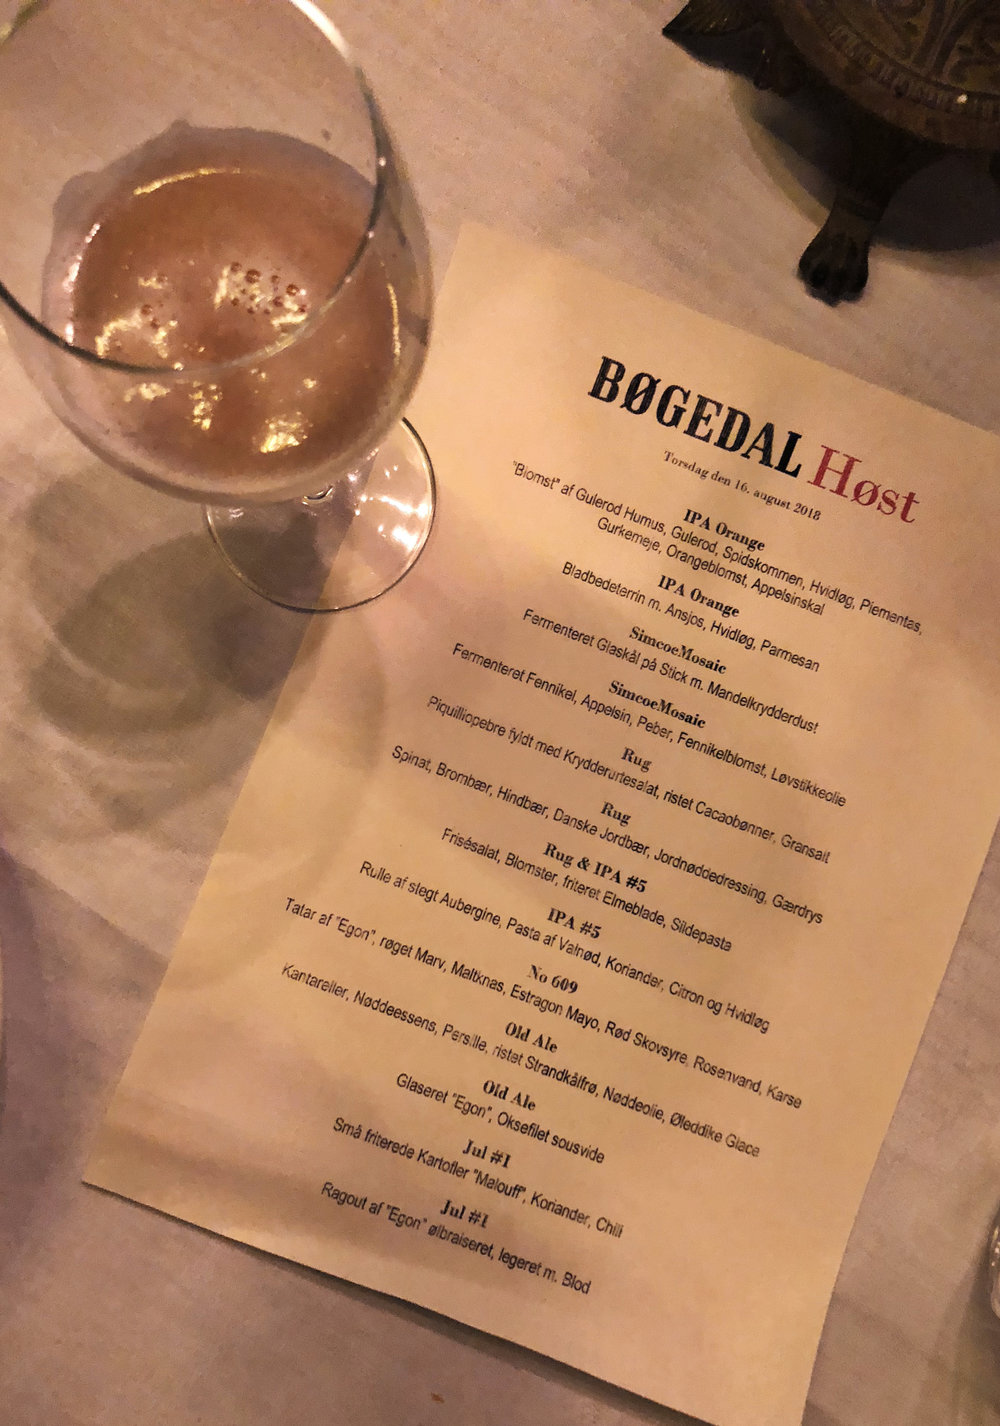 The menu at HØST Bøgedal 2018